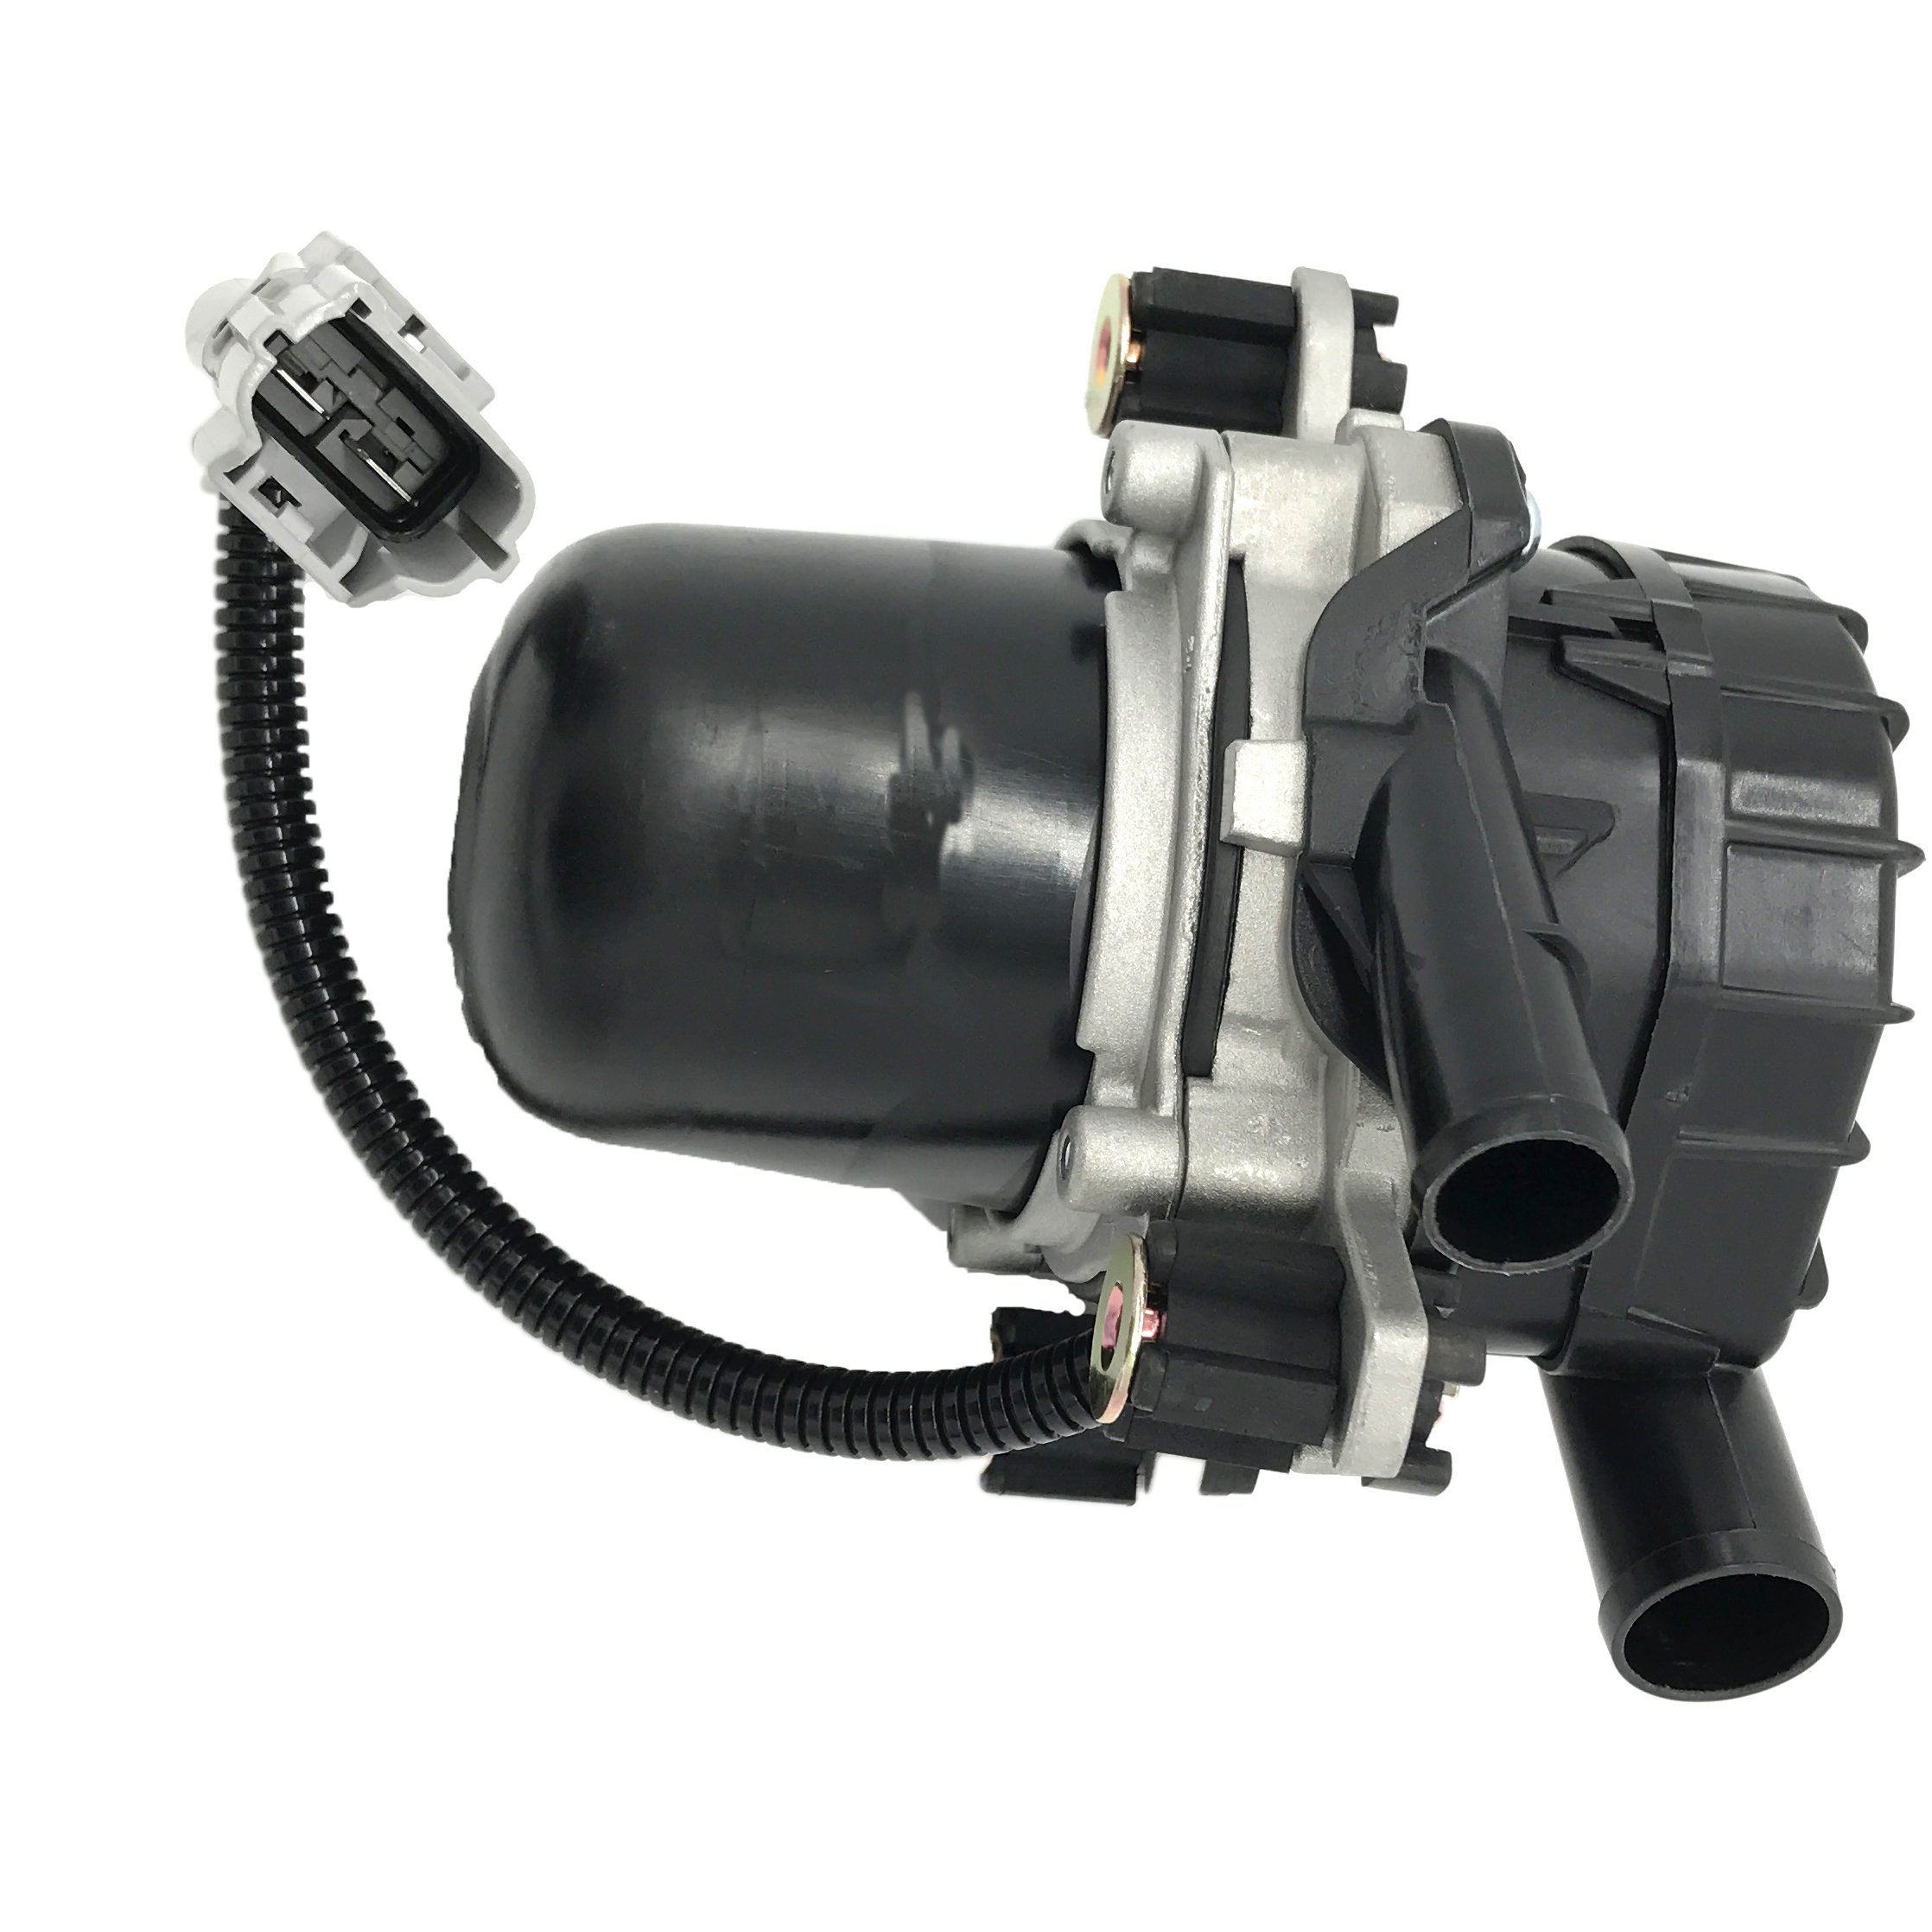 Secondary Air Injection Pump for 4Runner Land Cruiser Sequoia Tundra Lexus LX470 GX470